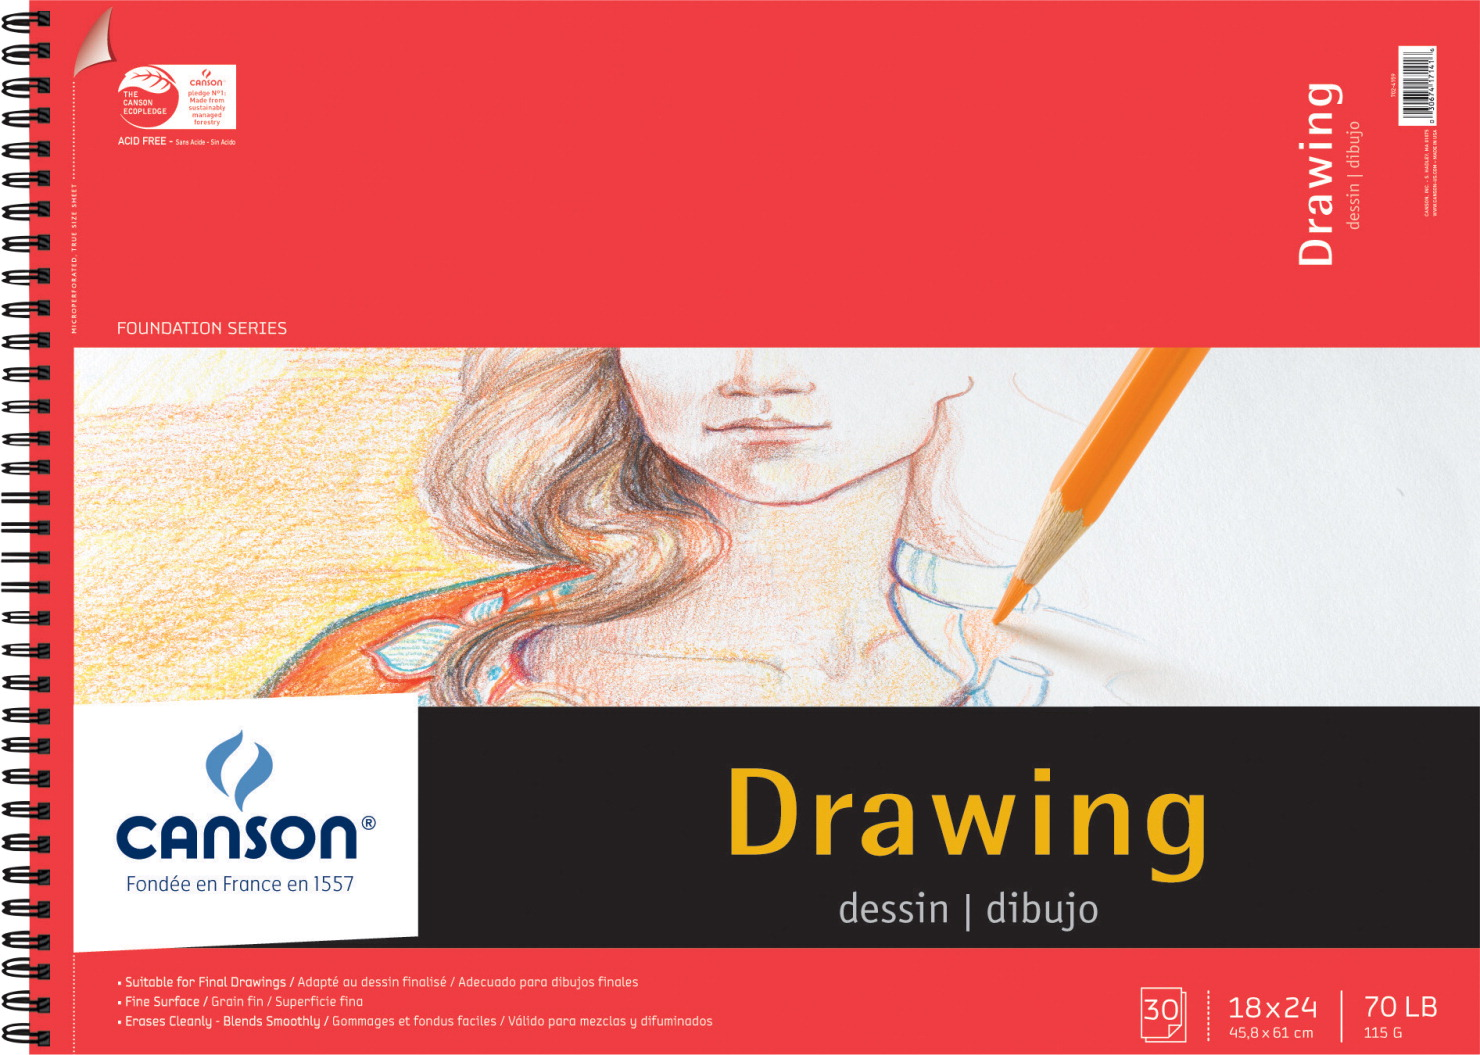 Canson Foundation Acid Free Heavy Weight Drawing Pad 30 Sheets